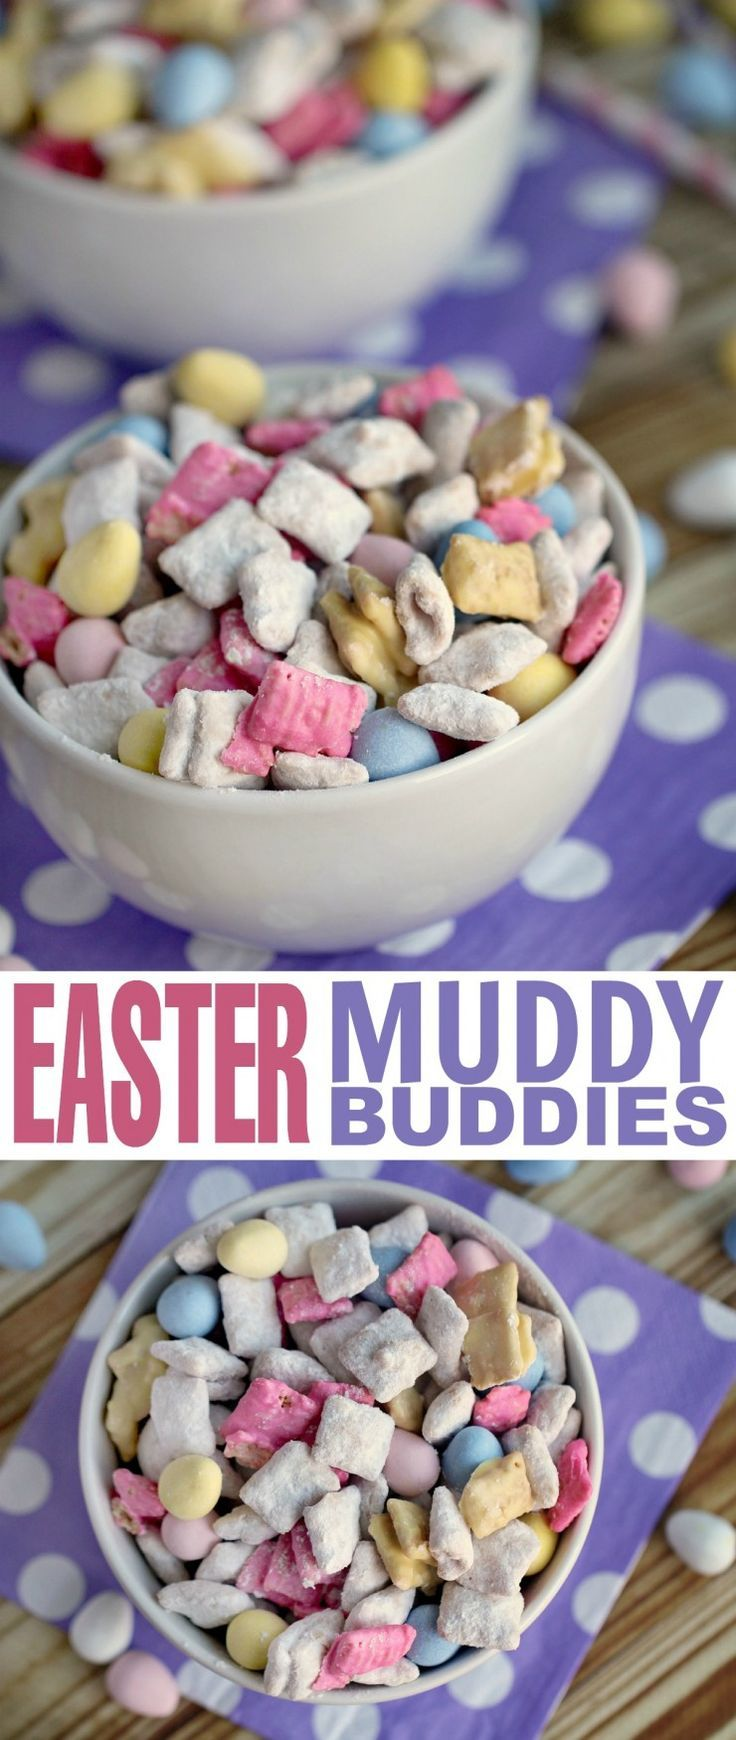 78+ ideas about Buddy Holiday on Pinterest | Chex mix muddy ...